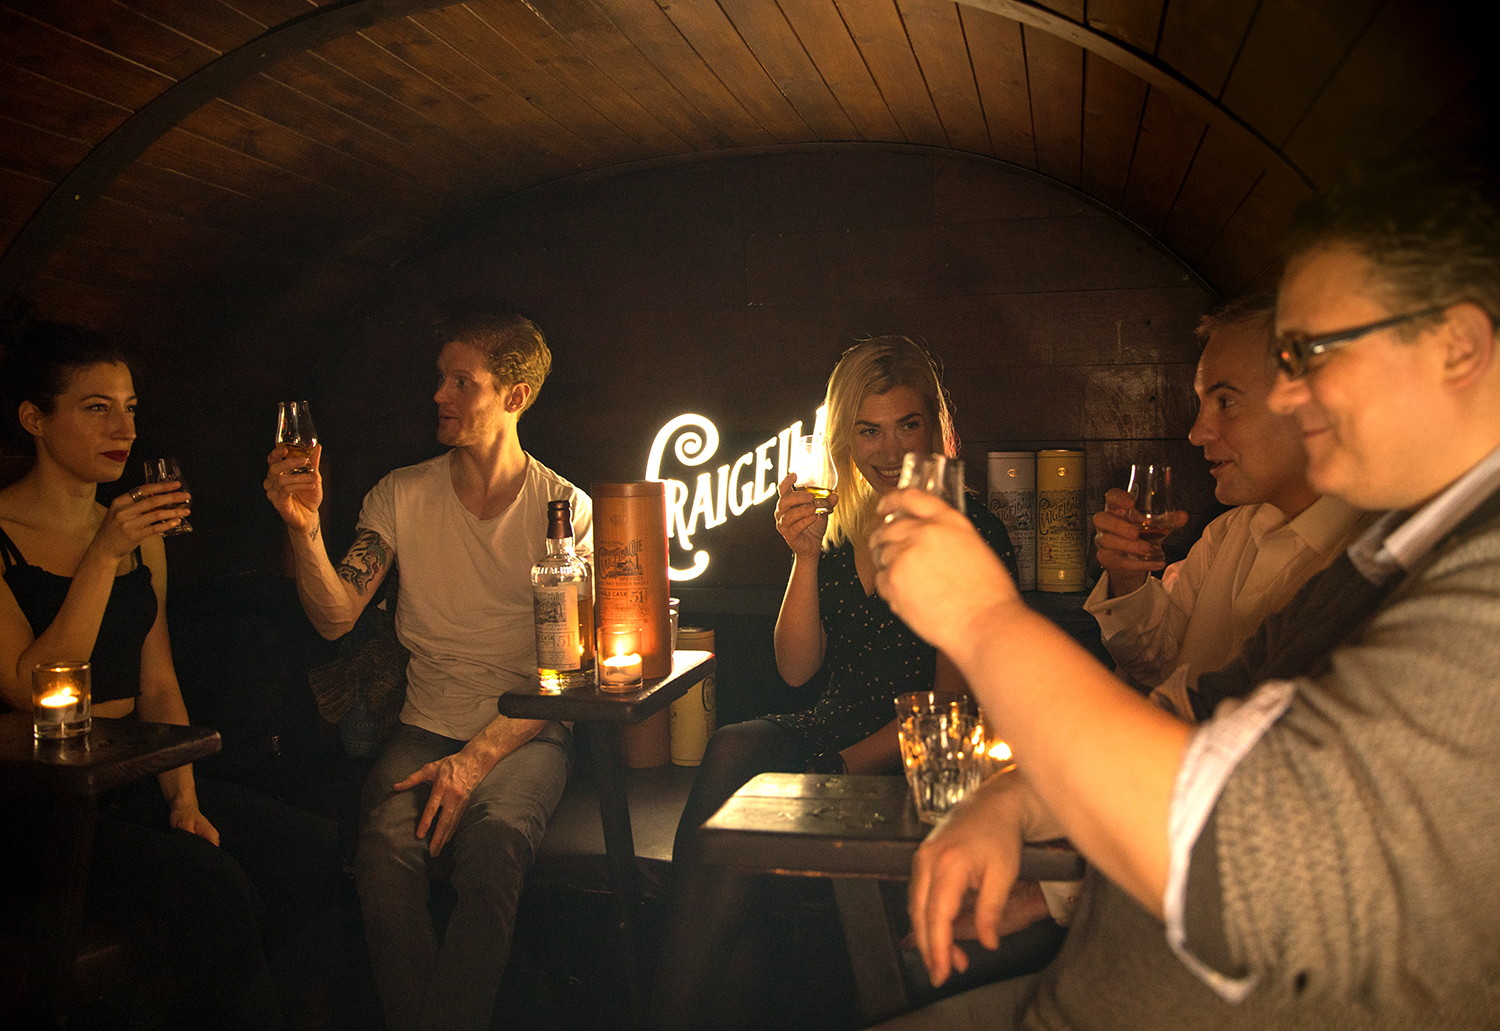 Craigellachie Serves Free Samples of its Prized Single Malt Scotch Inside a Traveling 'Tiny Bar'